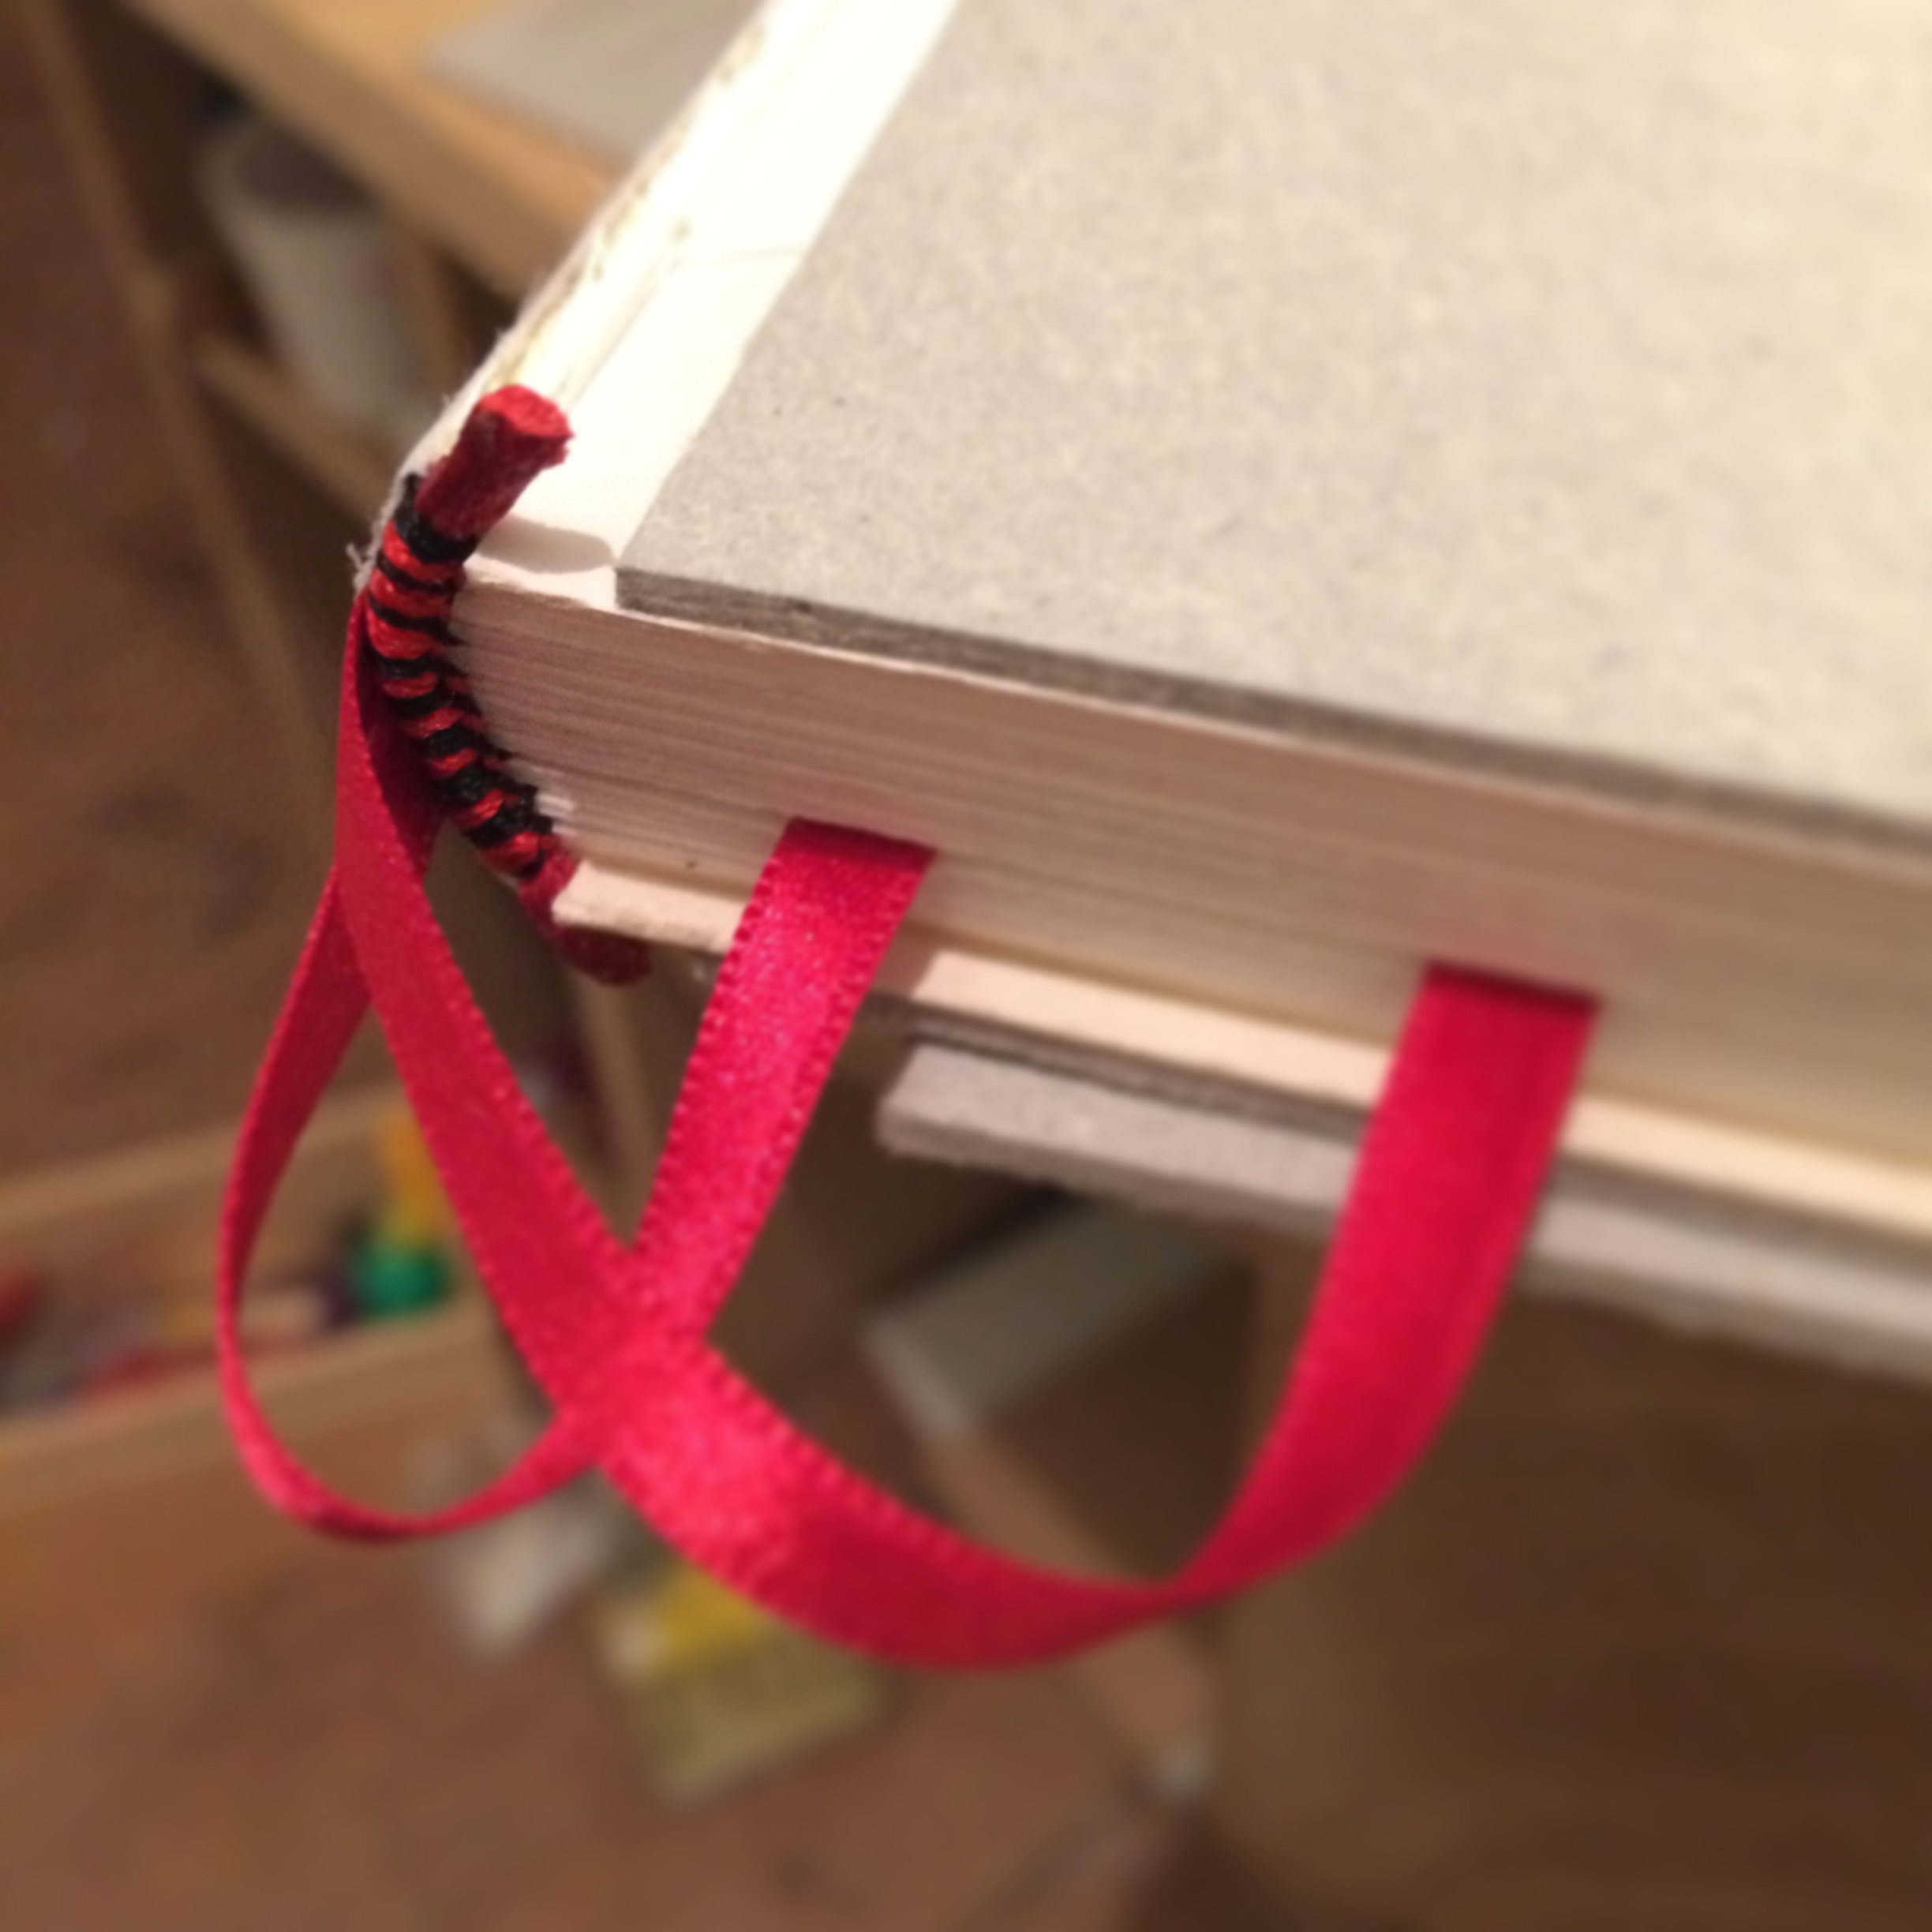 For this binding I also decided to add some page makers as I often want to be able to jump between sections of my notebooks and journals